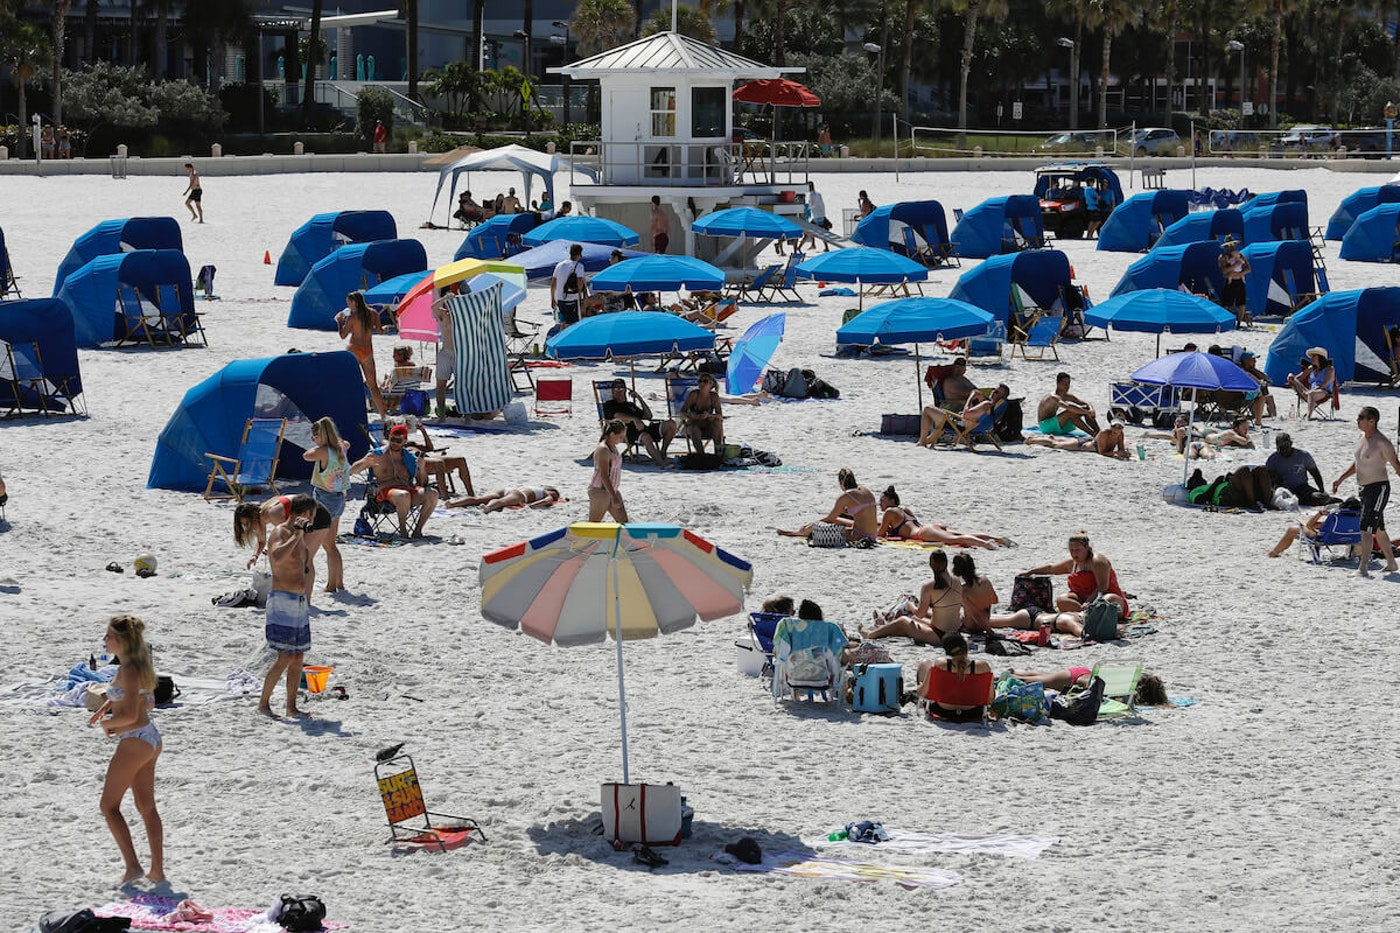 Visitors enjoy Clearwater Beach Wednesday, March 18, 2020, in Clearwater Beach, Fla. Beach goers are keeping a safe distance from each other to help protect from the spread of the coronavirus. (AP Photo/Chris O'Meara)